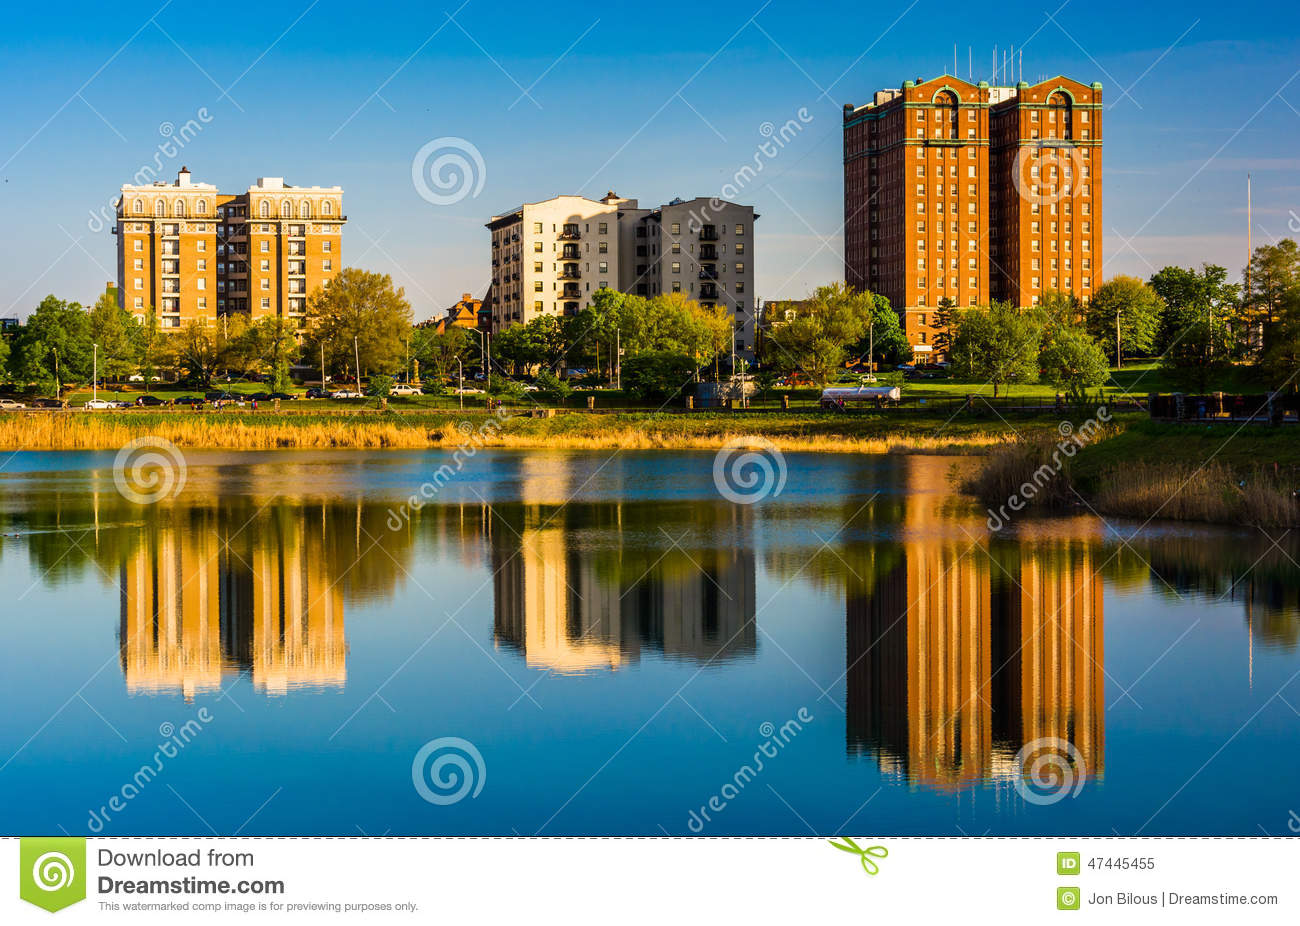 Reflections Of Buildings In Druid Lake, At Druid Hill Park, In B.